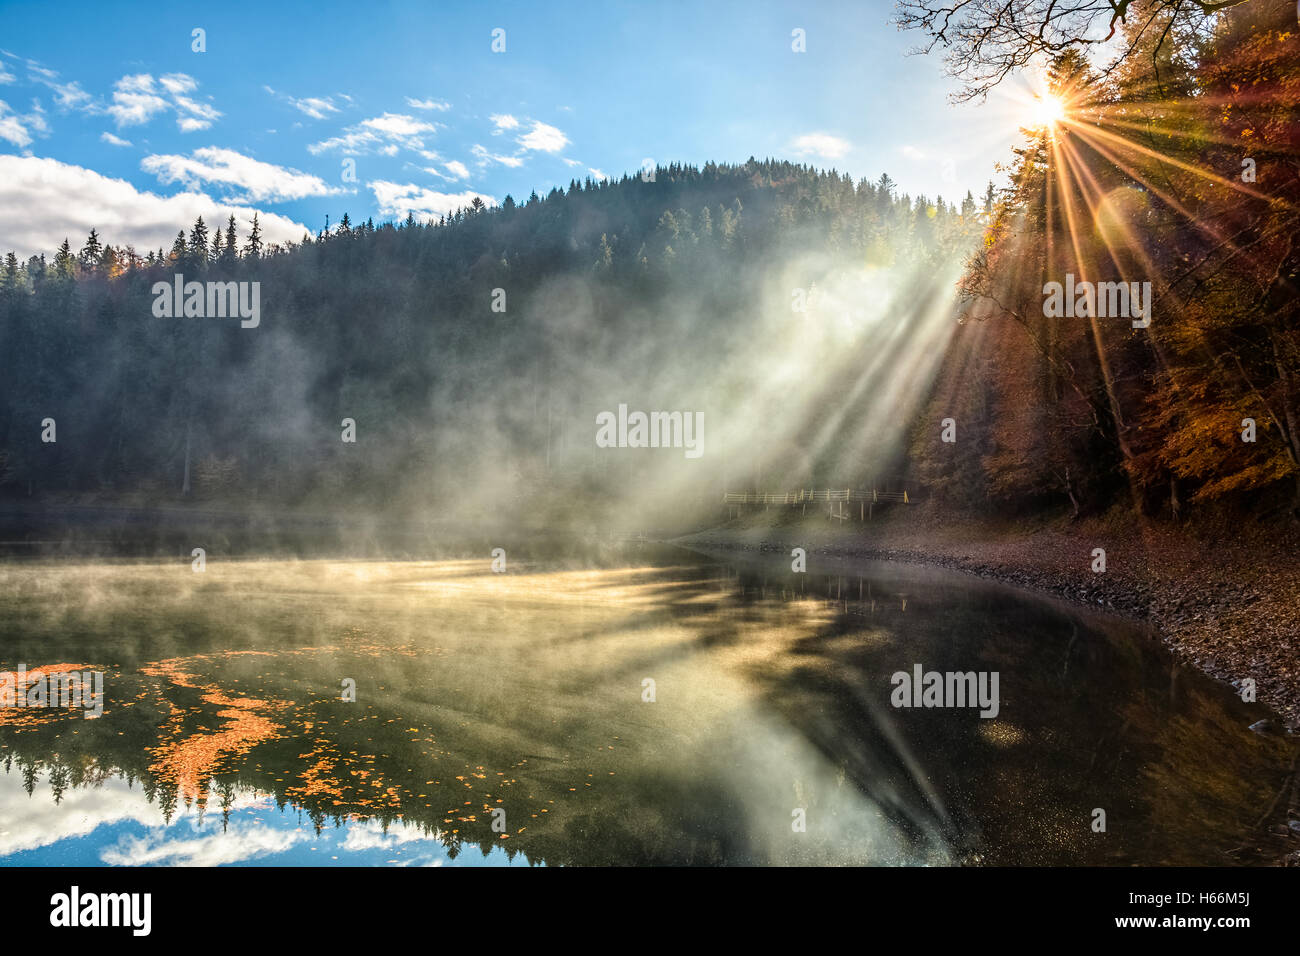 view on crystal clear lake with rocky shore and smoke on the water near the pine forest in fog at the foot of the - Stock Image